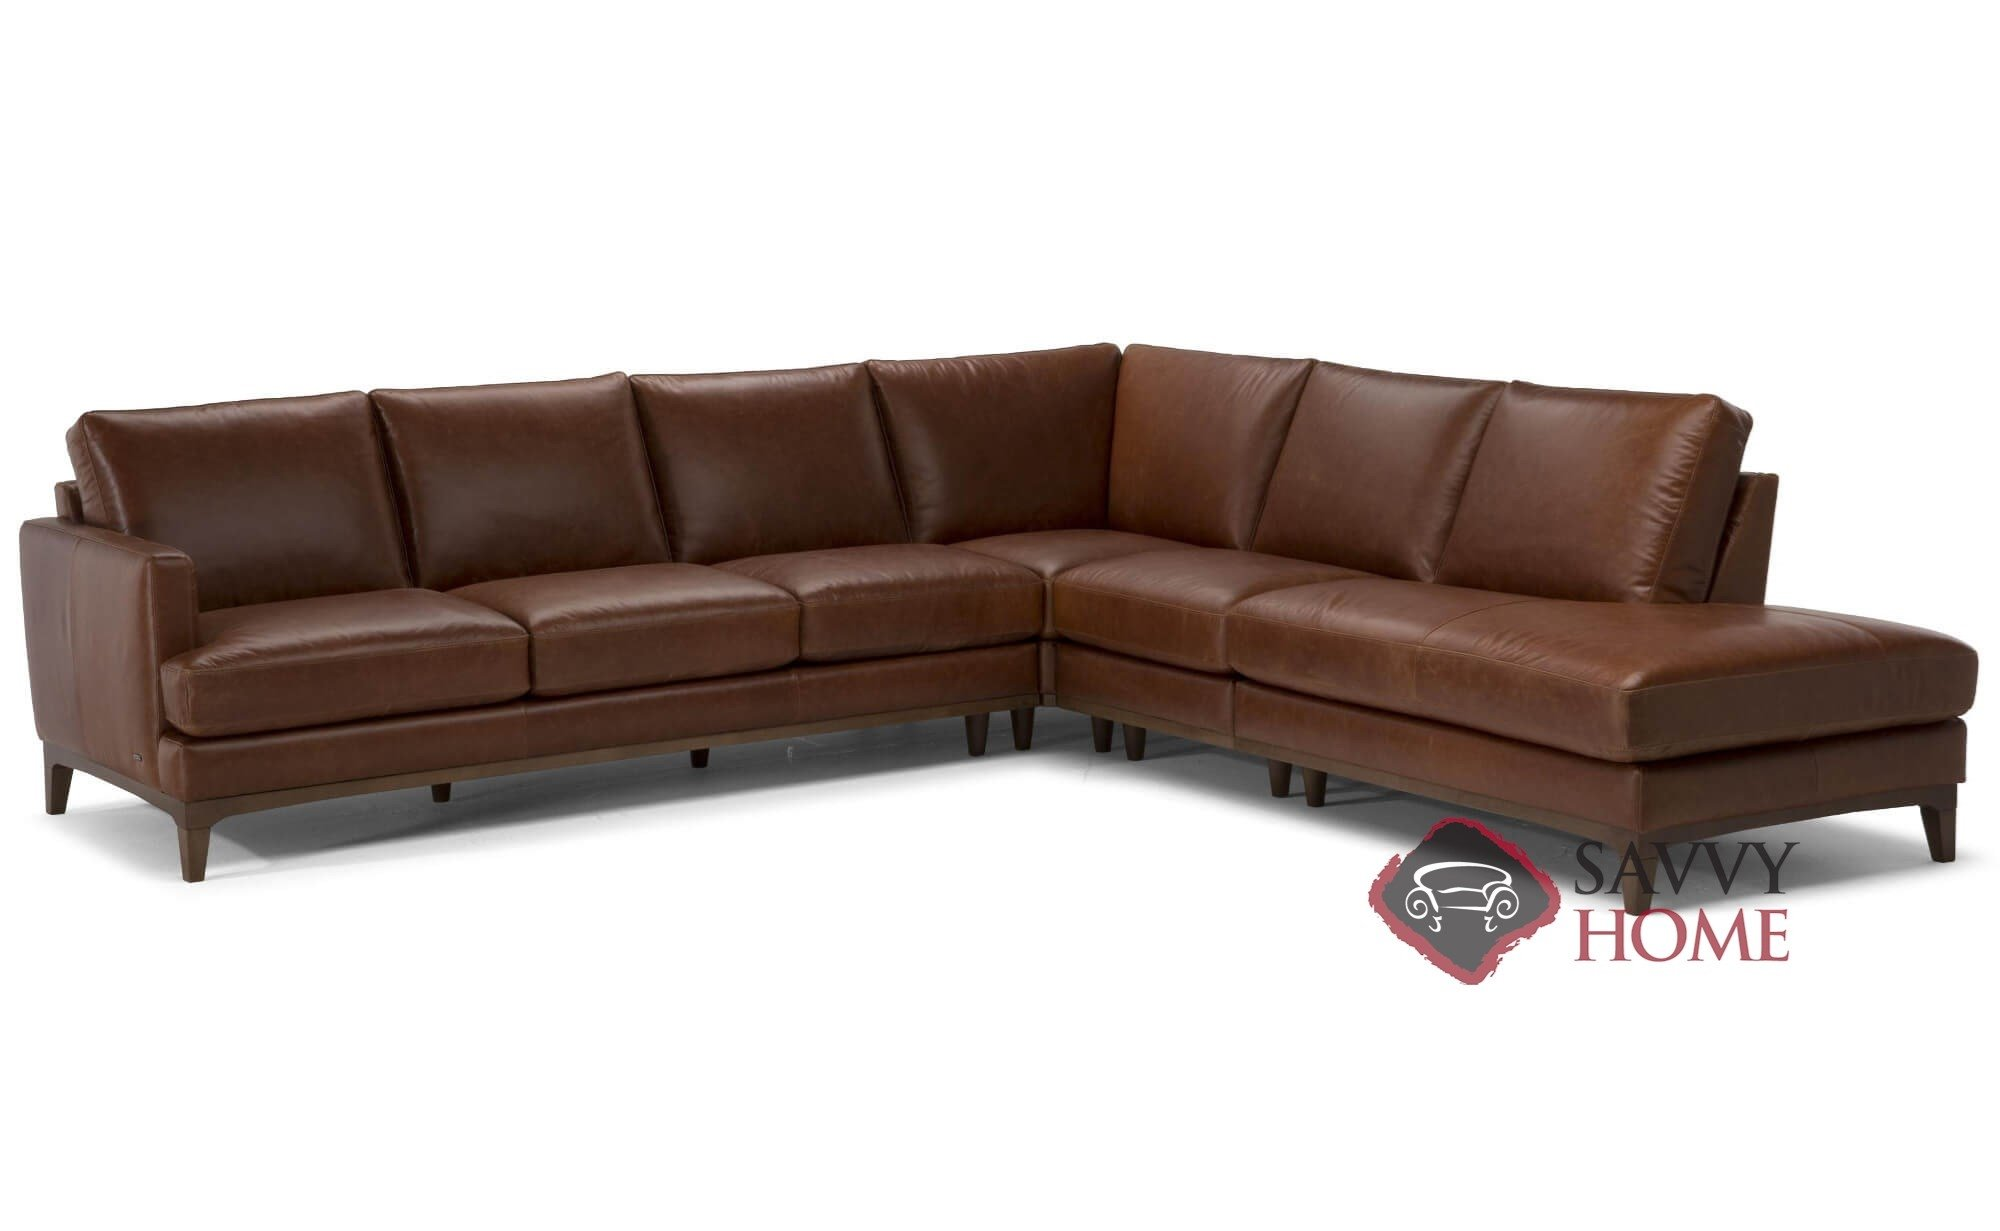 Bevera Large Leather Chaise Sectional By Natuzzi Editions B970 018 019 011 0